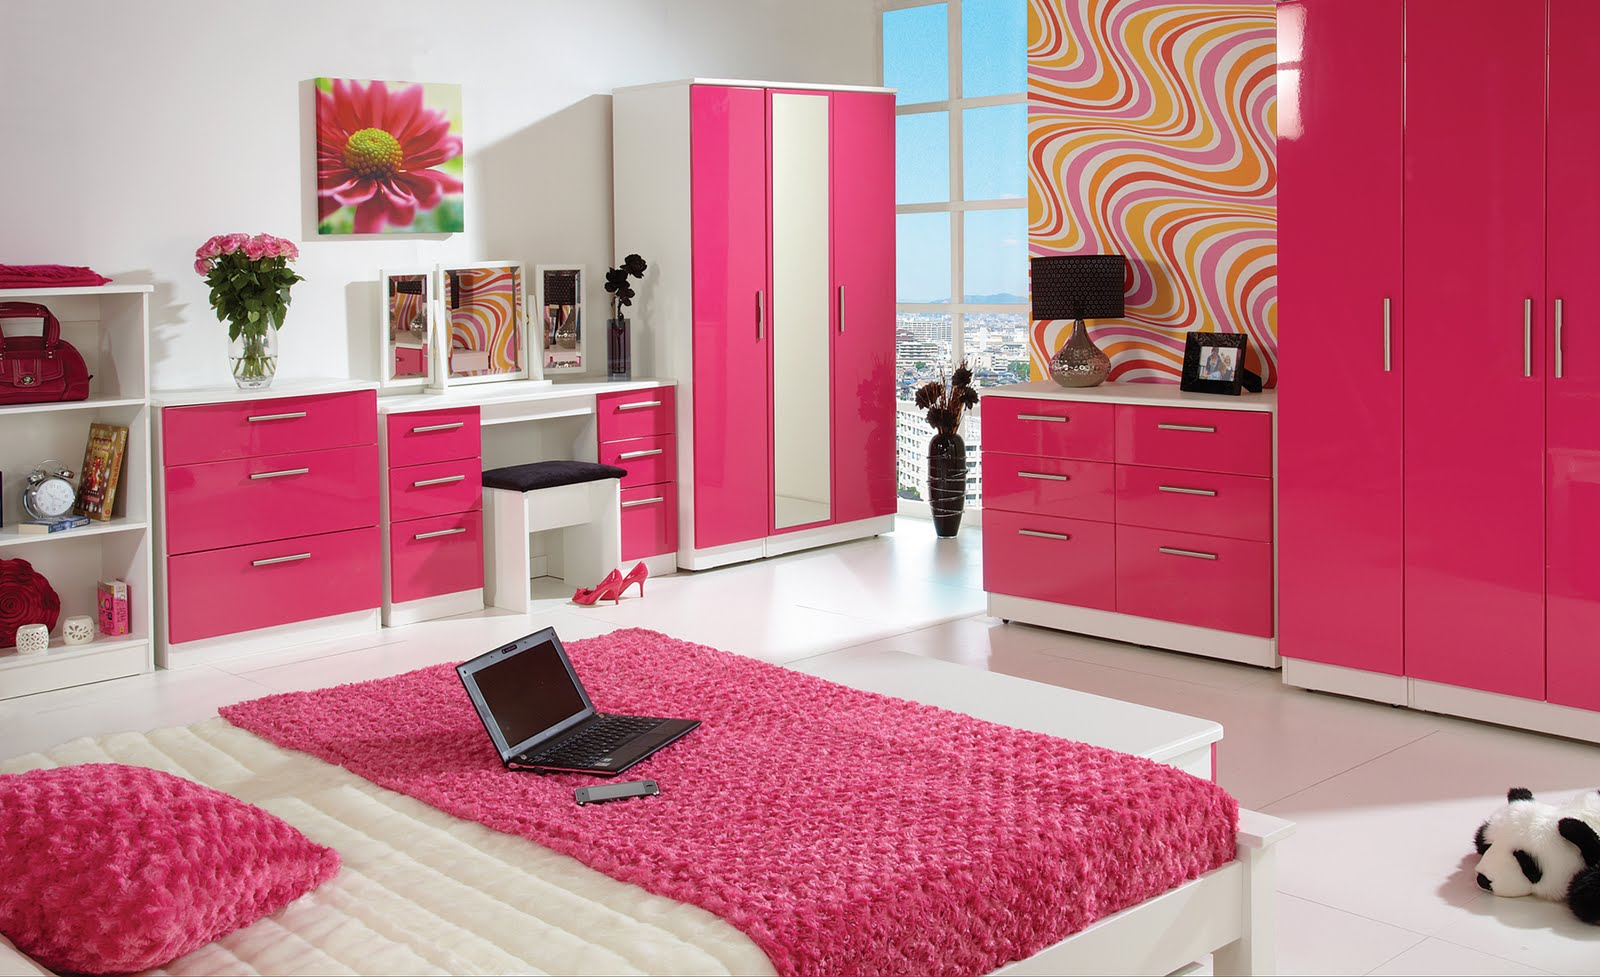 home furnishings from furniture store 247 pink high gloss